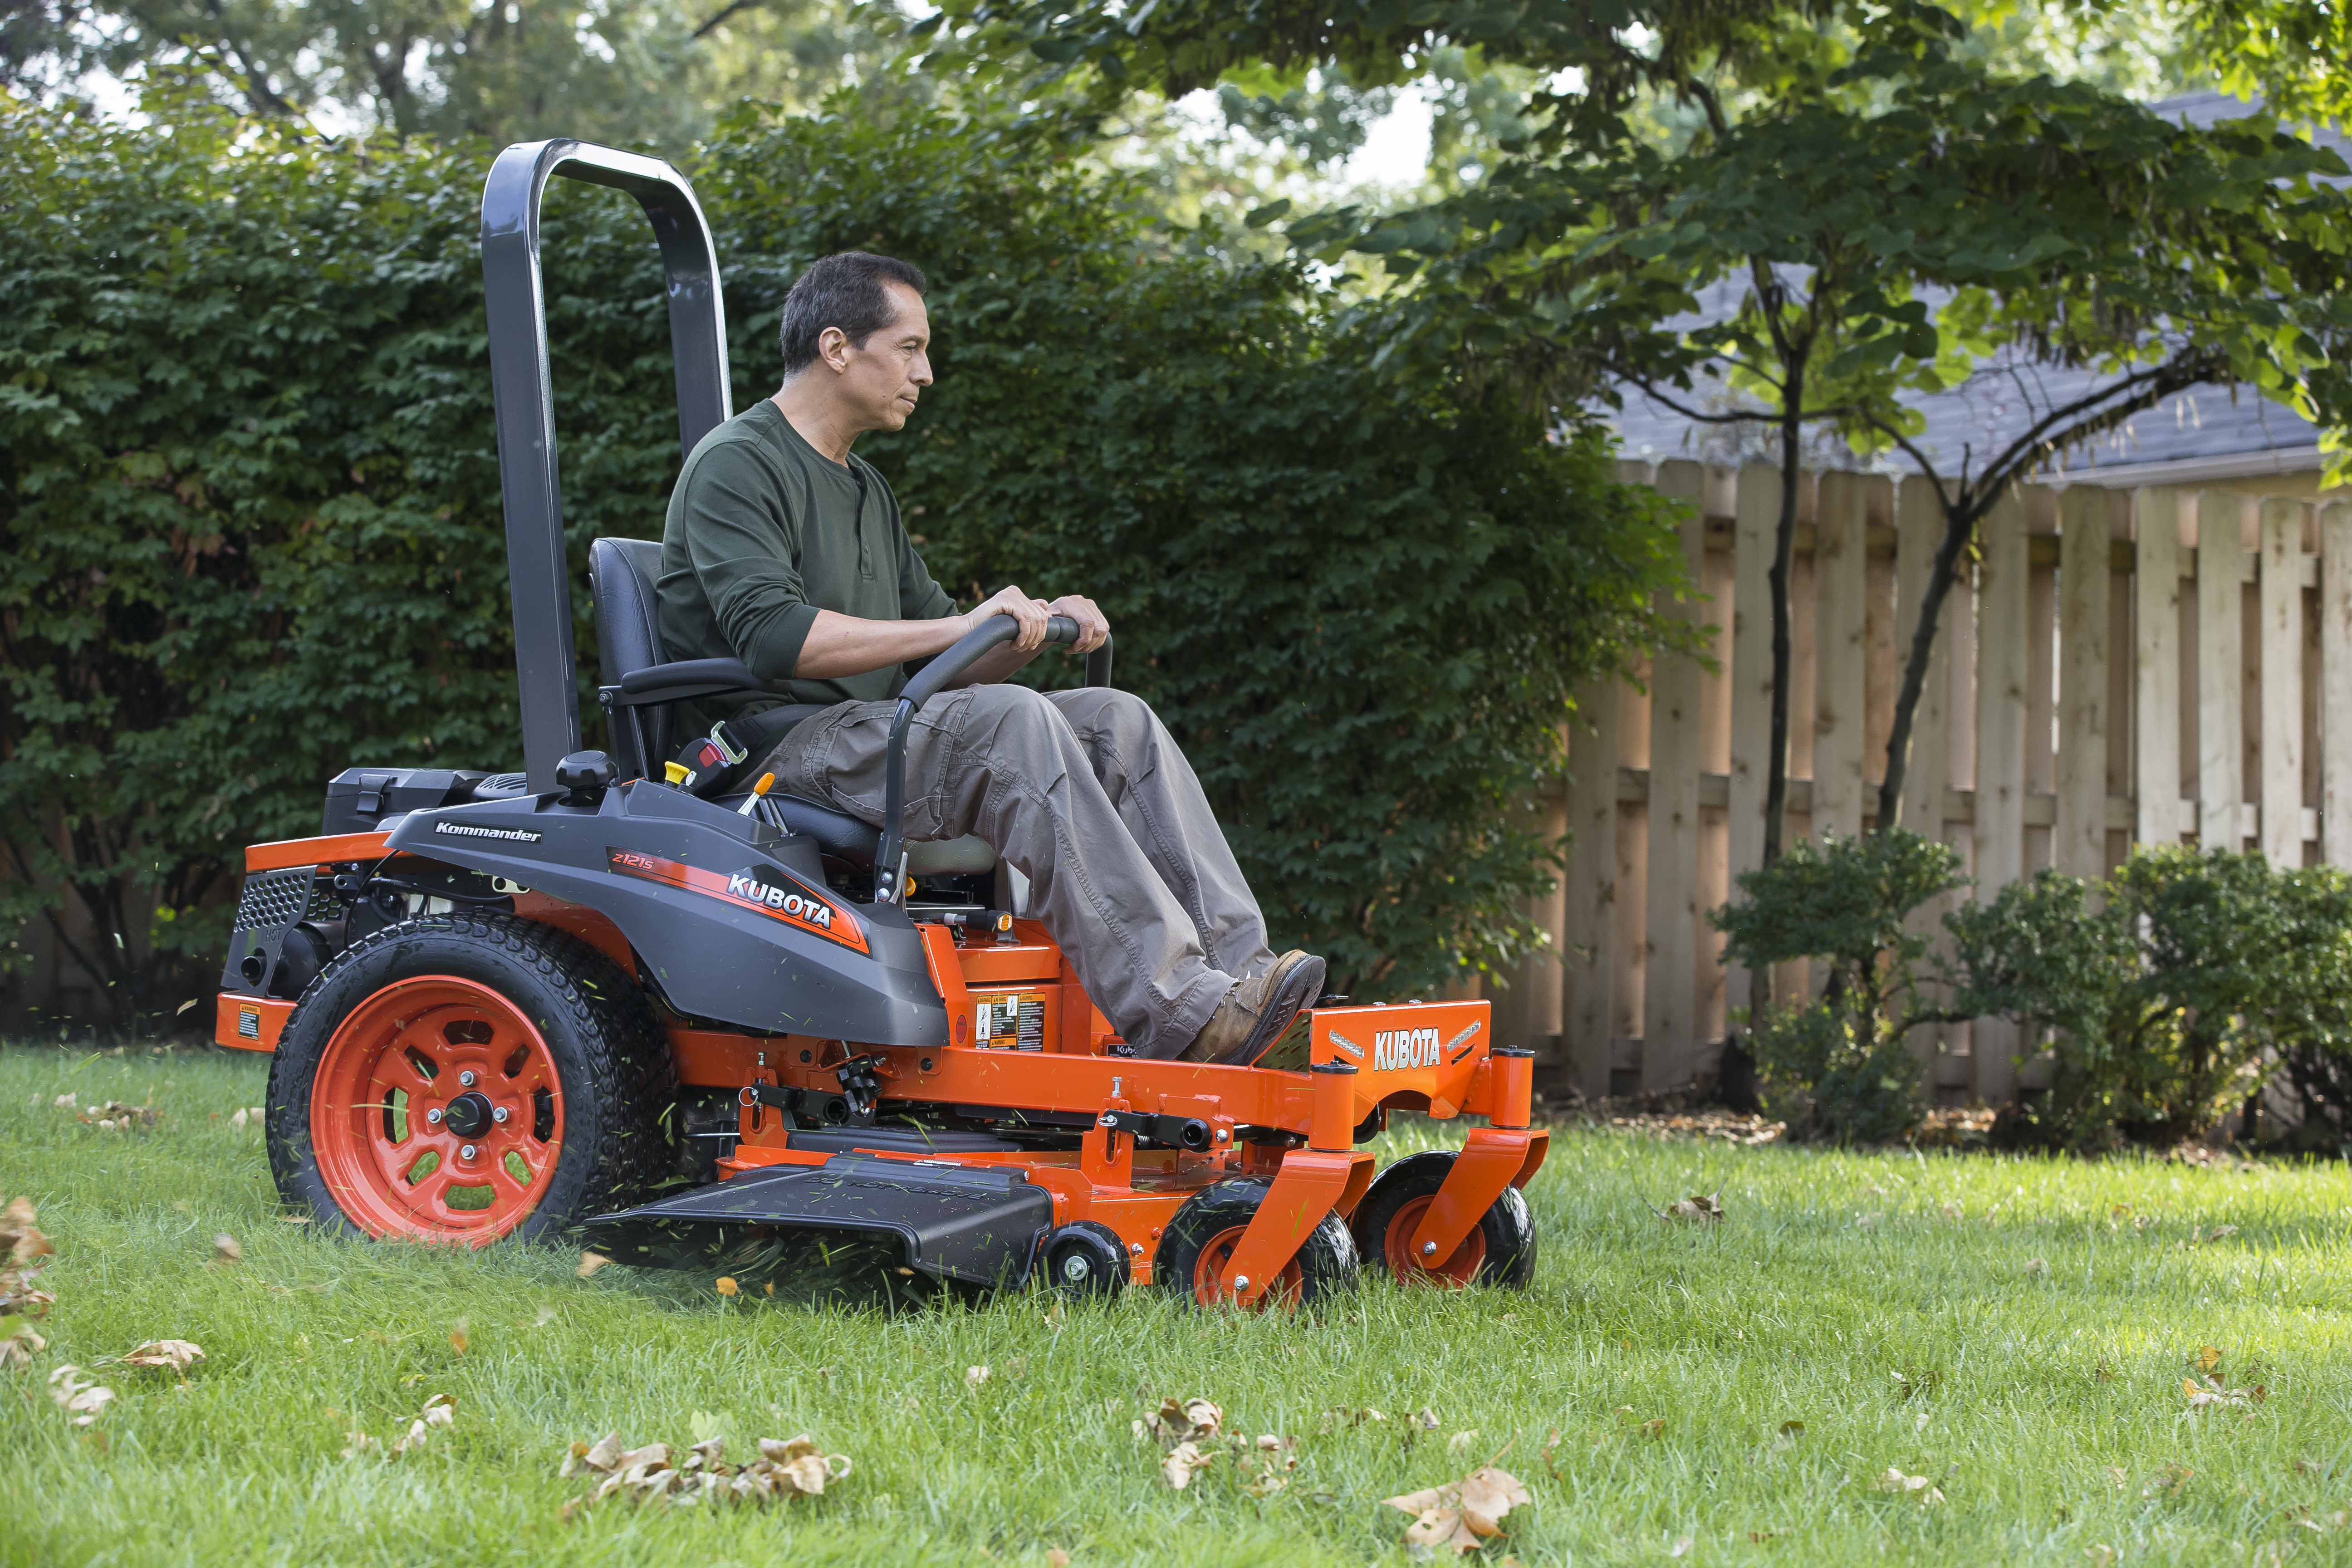 Man mowing lawn on a Kubota Zero Turn Mower